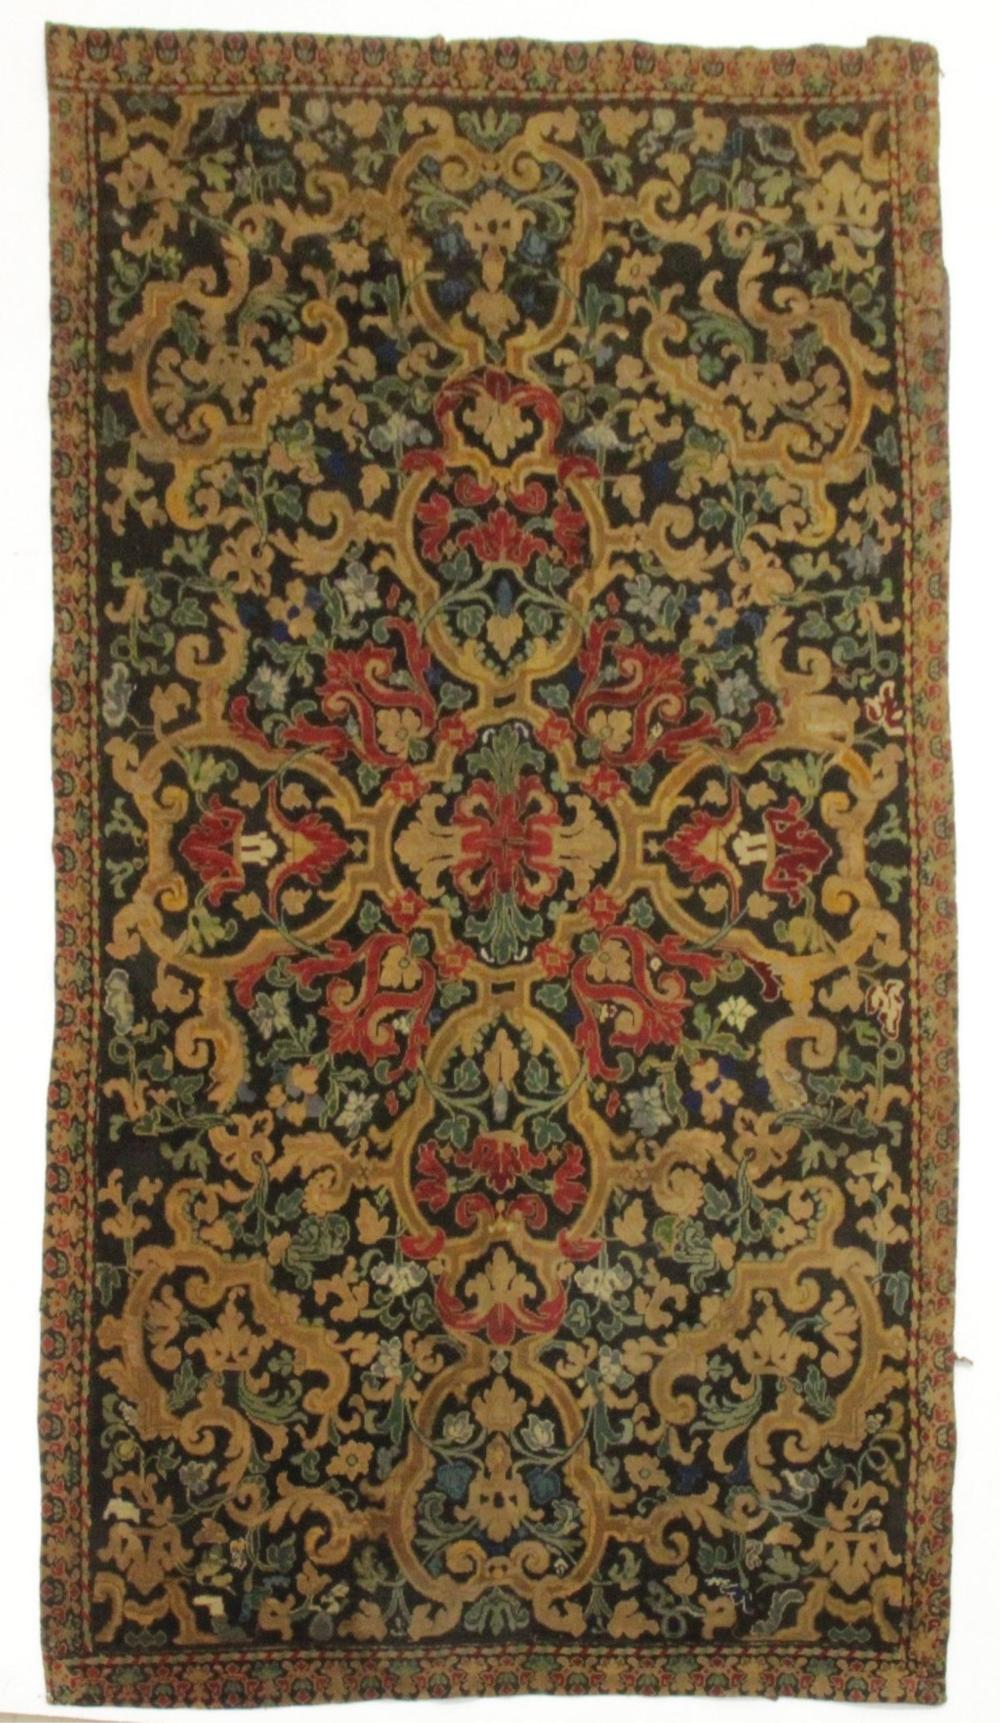 19TH C TAPESTRY